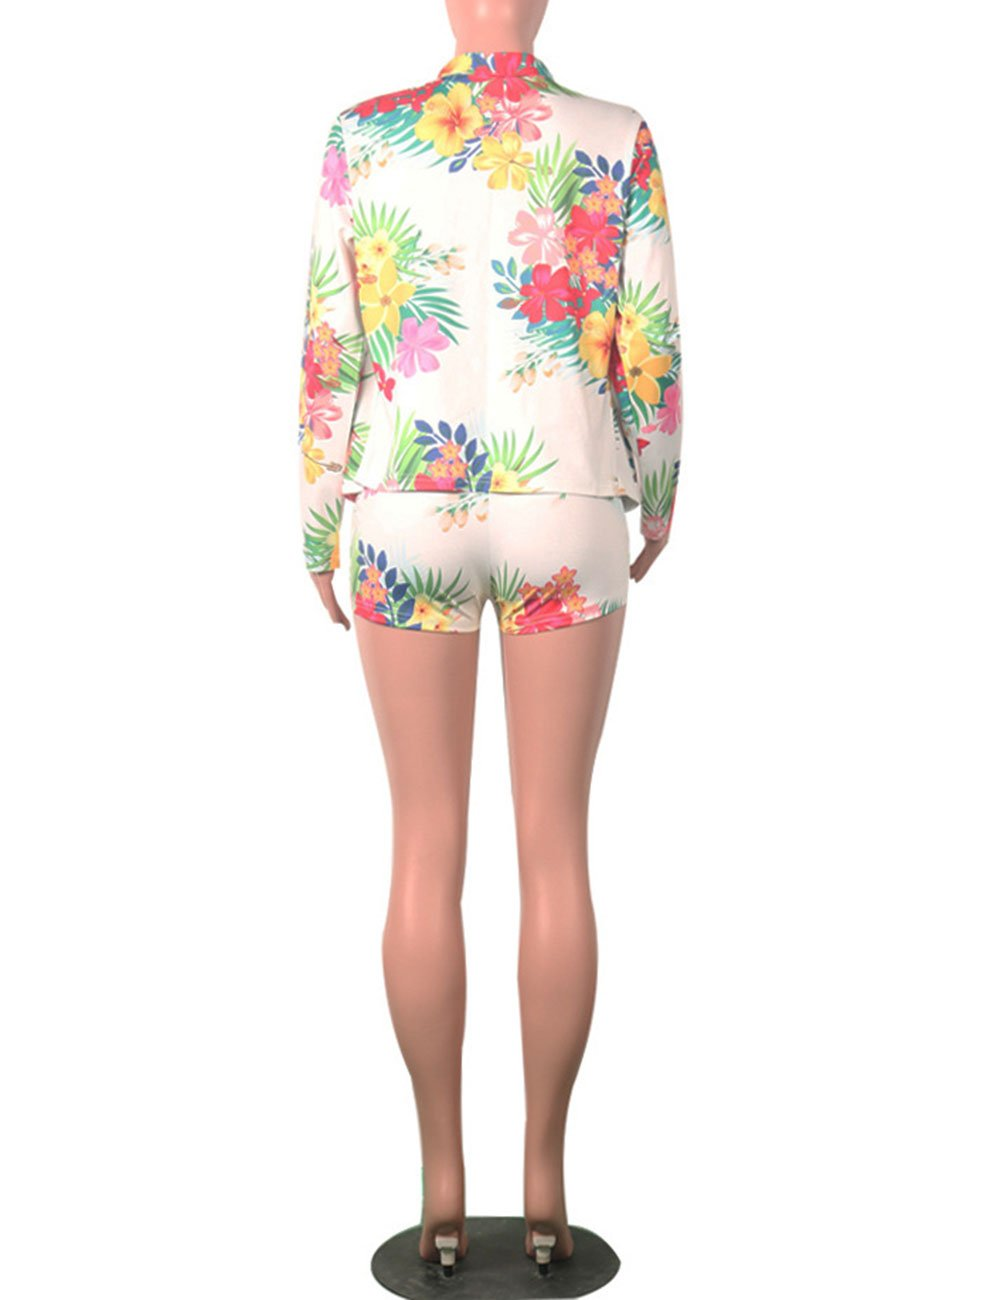 Women Floral Print Casual Two Pieces Suit Set Long Sleeve Blazer Shorts Outfit M by Angsuttc (Image #5)